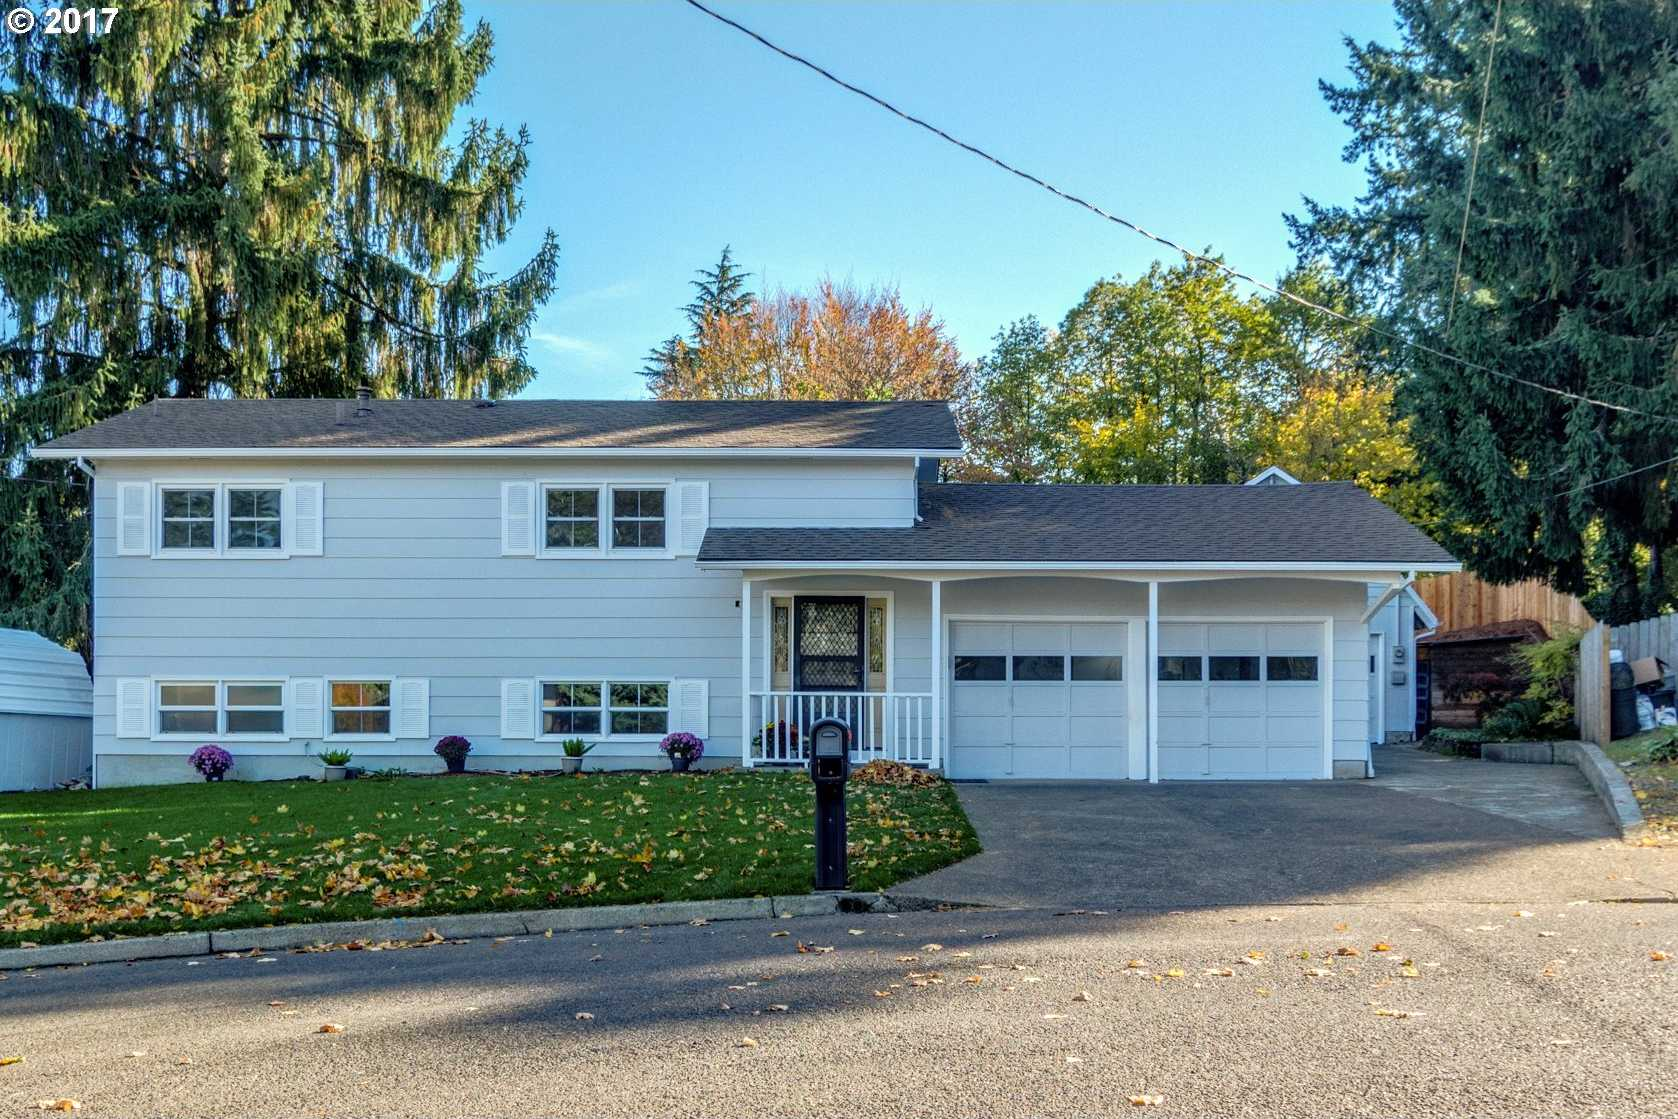 $379,000 - 3Br/2Ba -  for Sale in Lewelling, Milwaukie